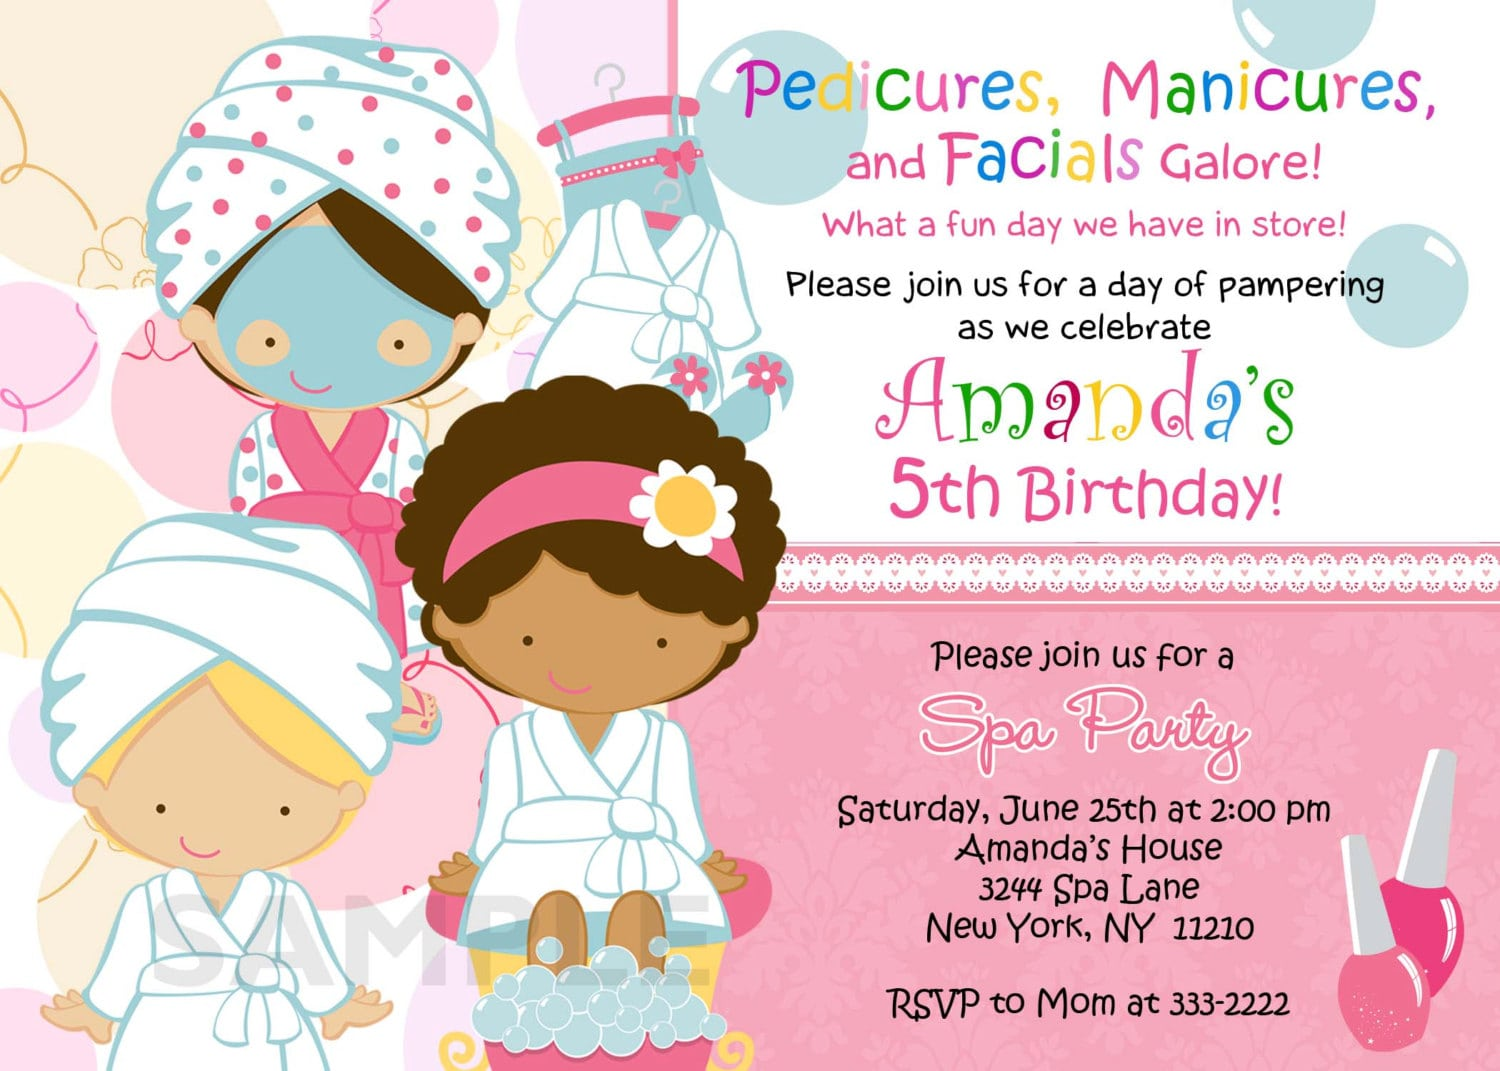 Astounding Spa Birthday Party Invitations As Birthday Party